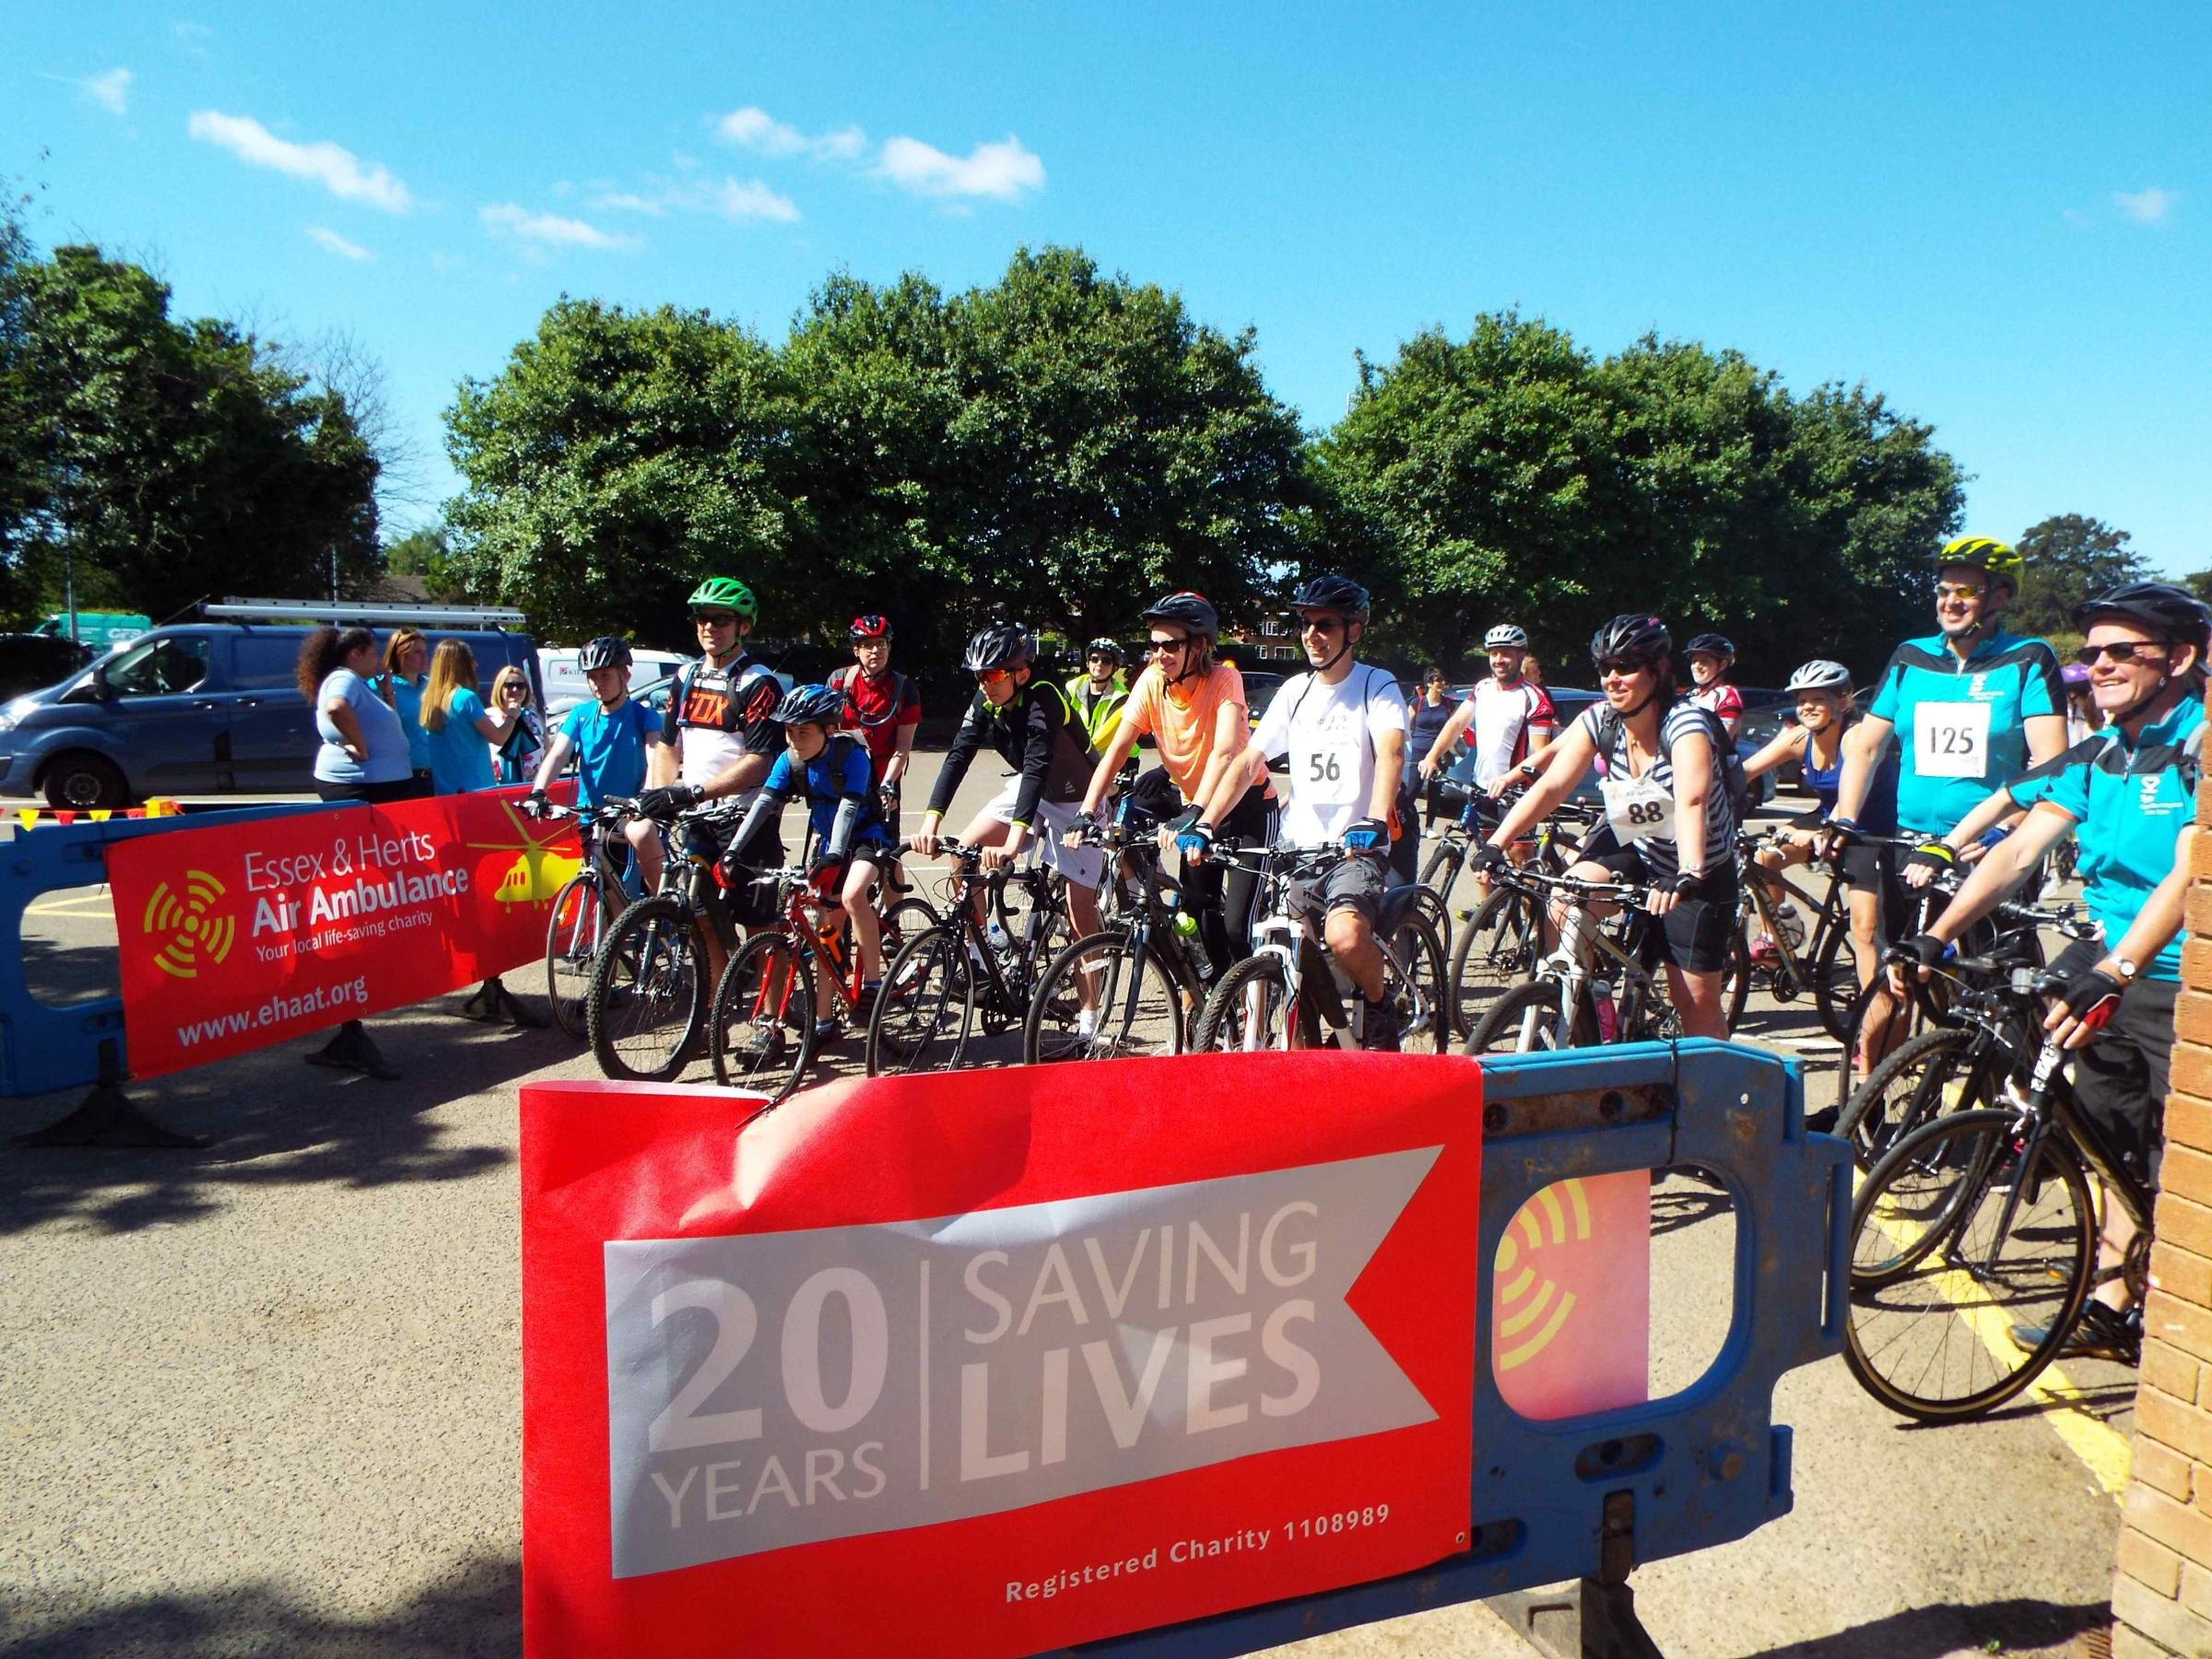 Last year's summer cycle in aid of the air ambulance